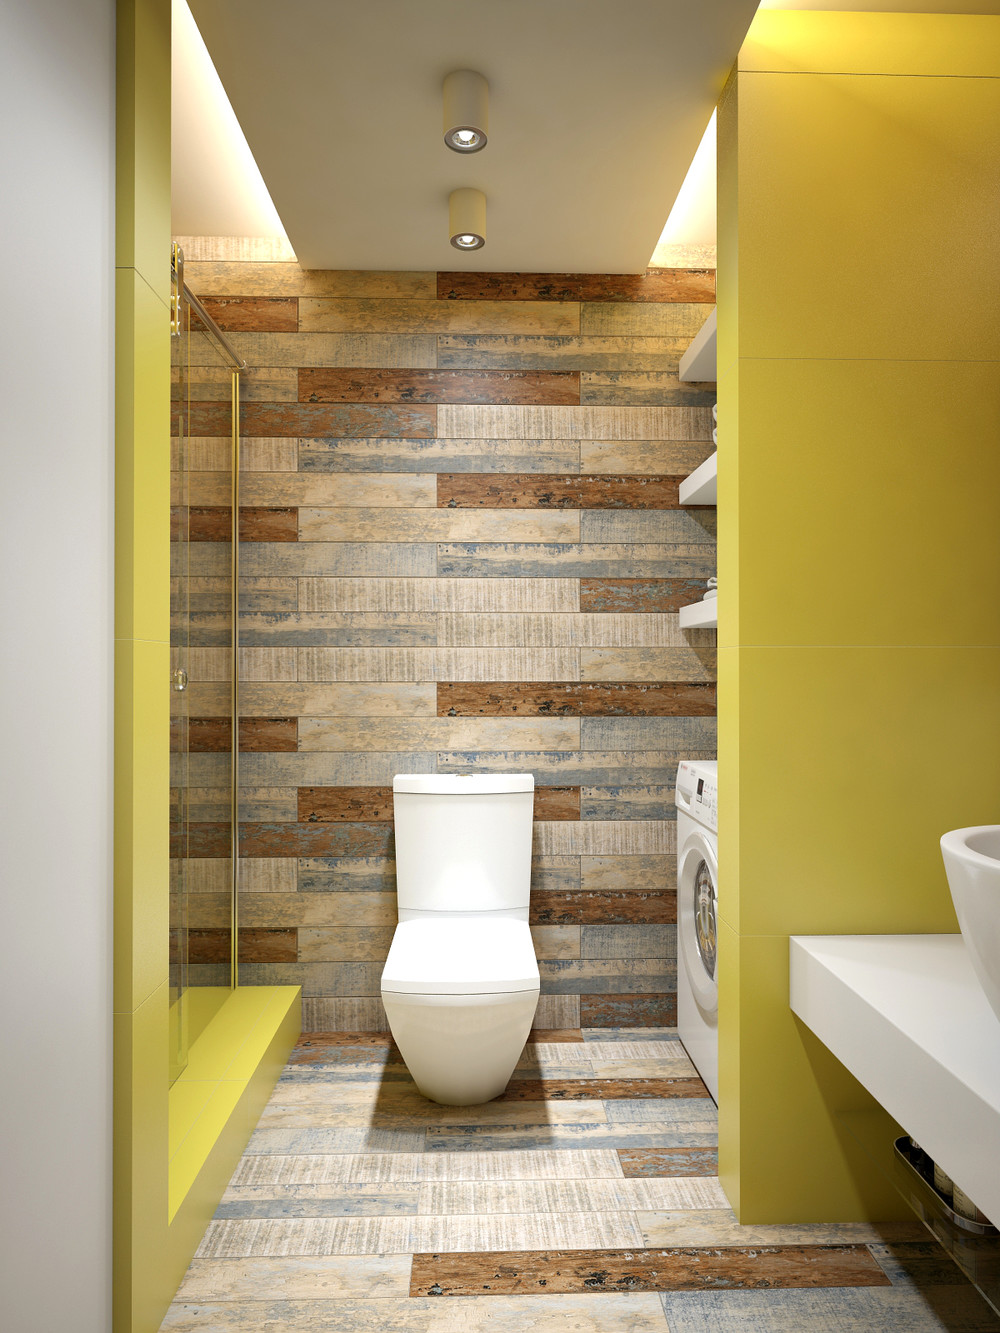 Bathroom Wood Wall Ideas - Interior Design